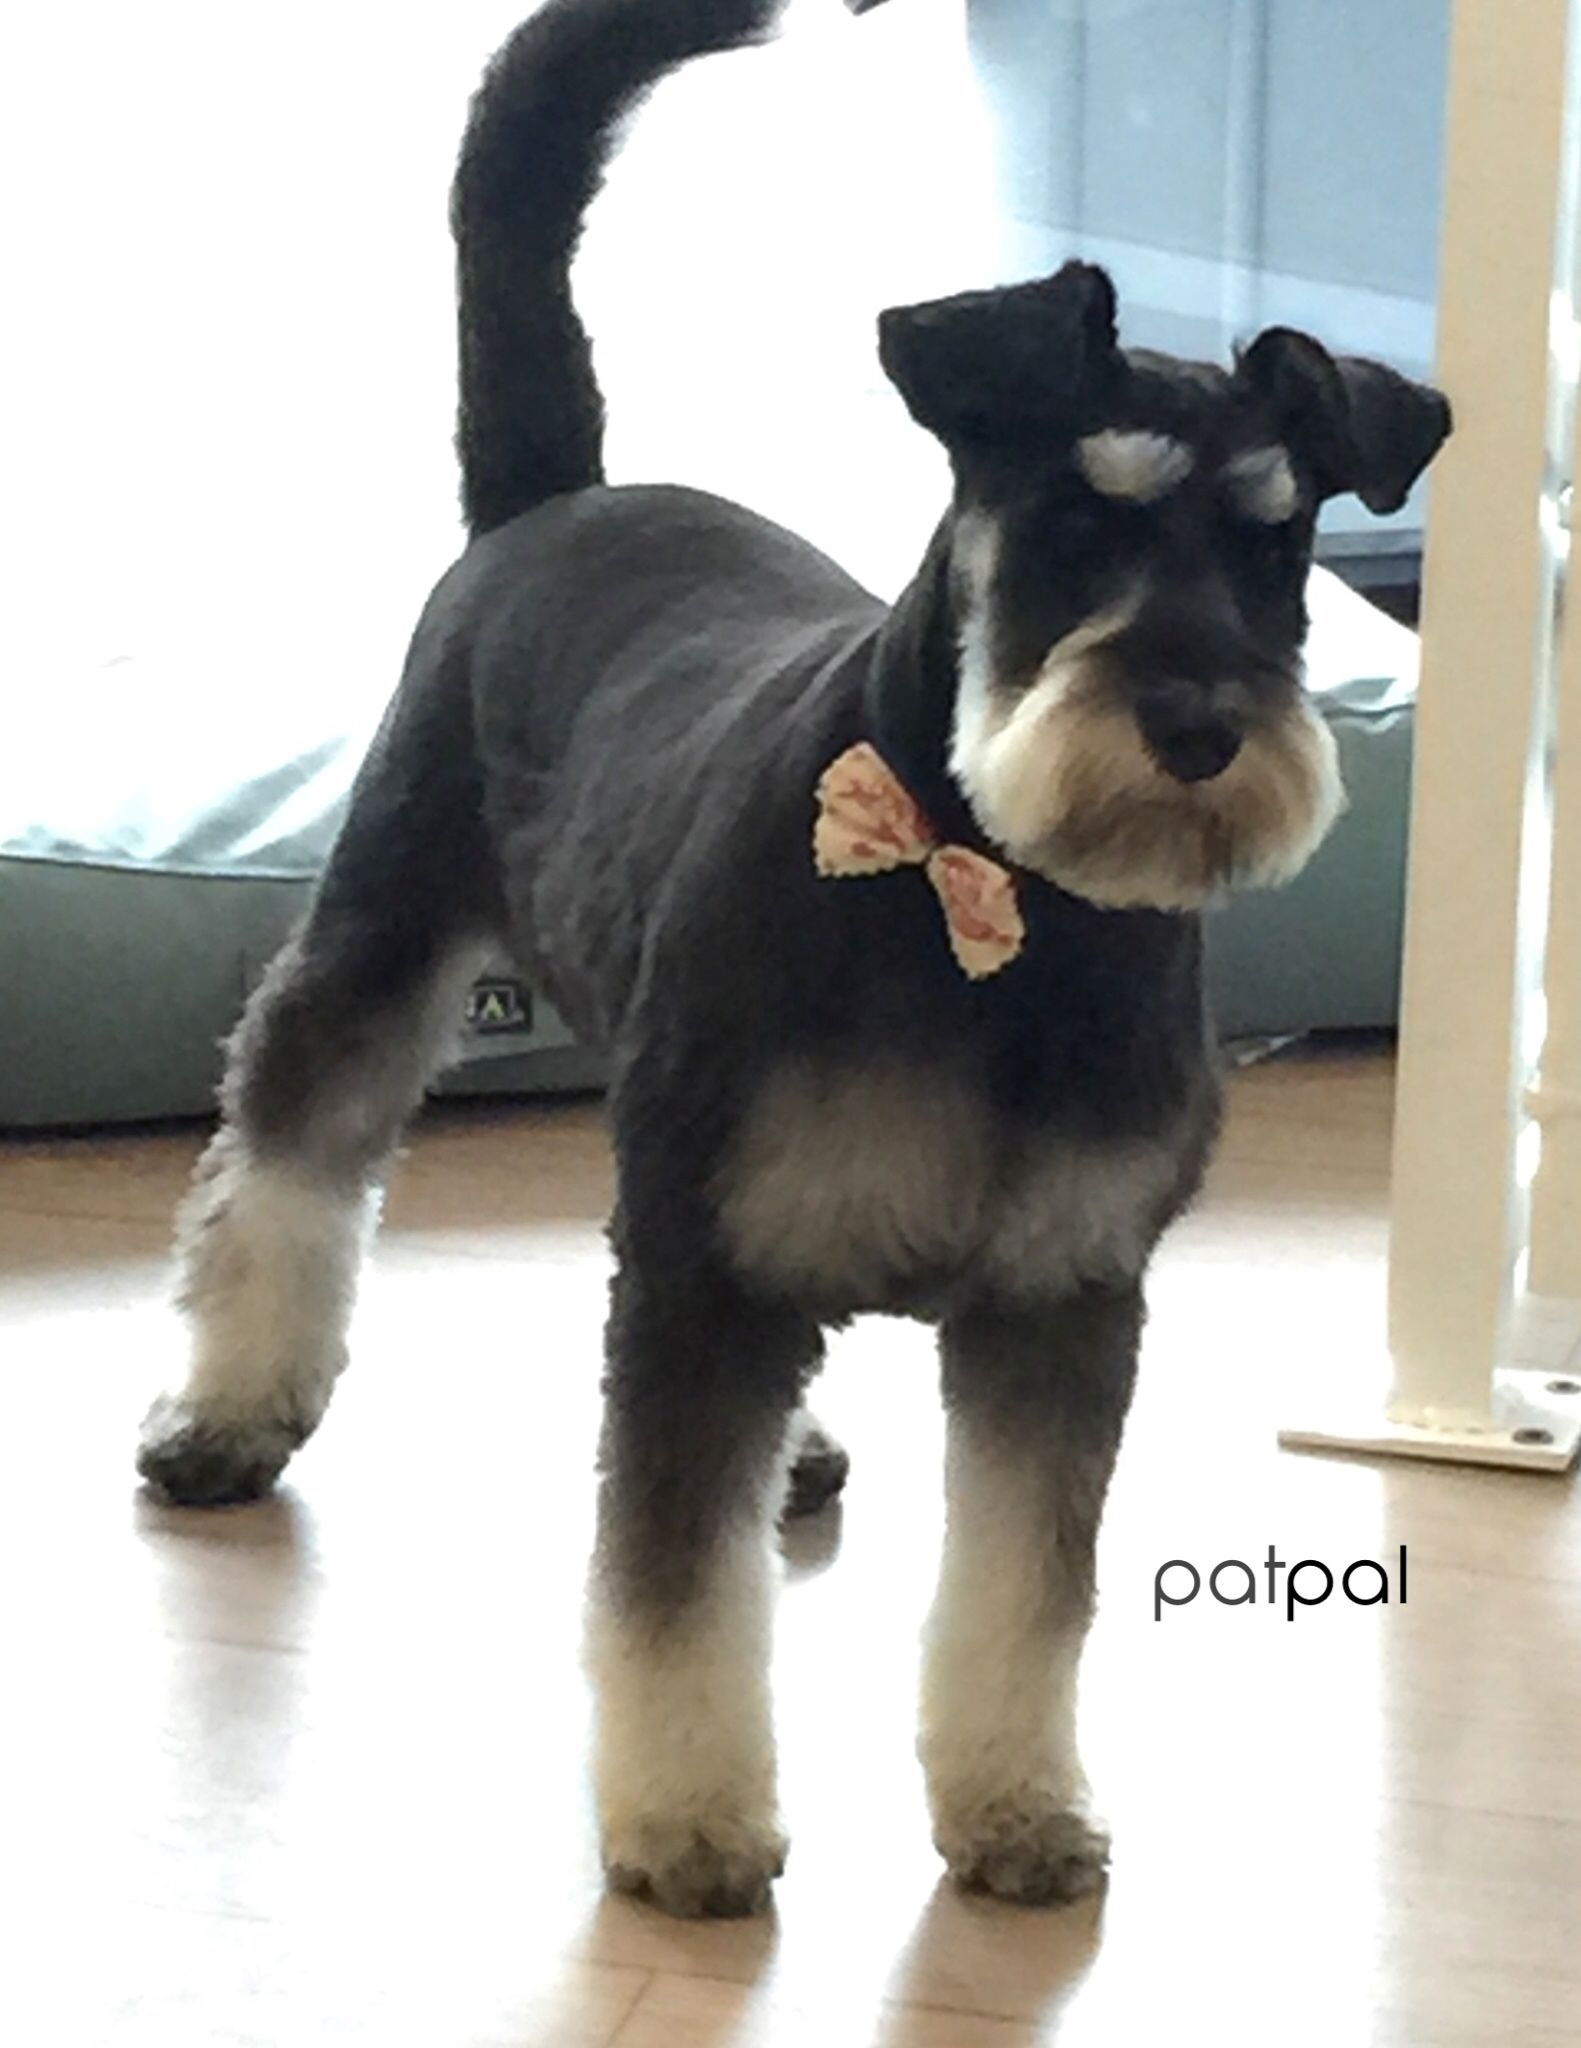 Miniature Schnauzer At Patpal Dog Grooming Willoughby Sydney Www Patpaldoggrooming Com Schnauzer Grooming Miniature Schnauzer Miniature Schnauzer Puppies